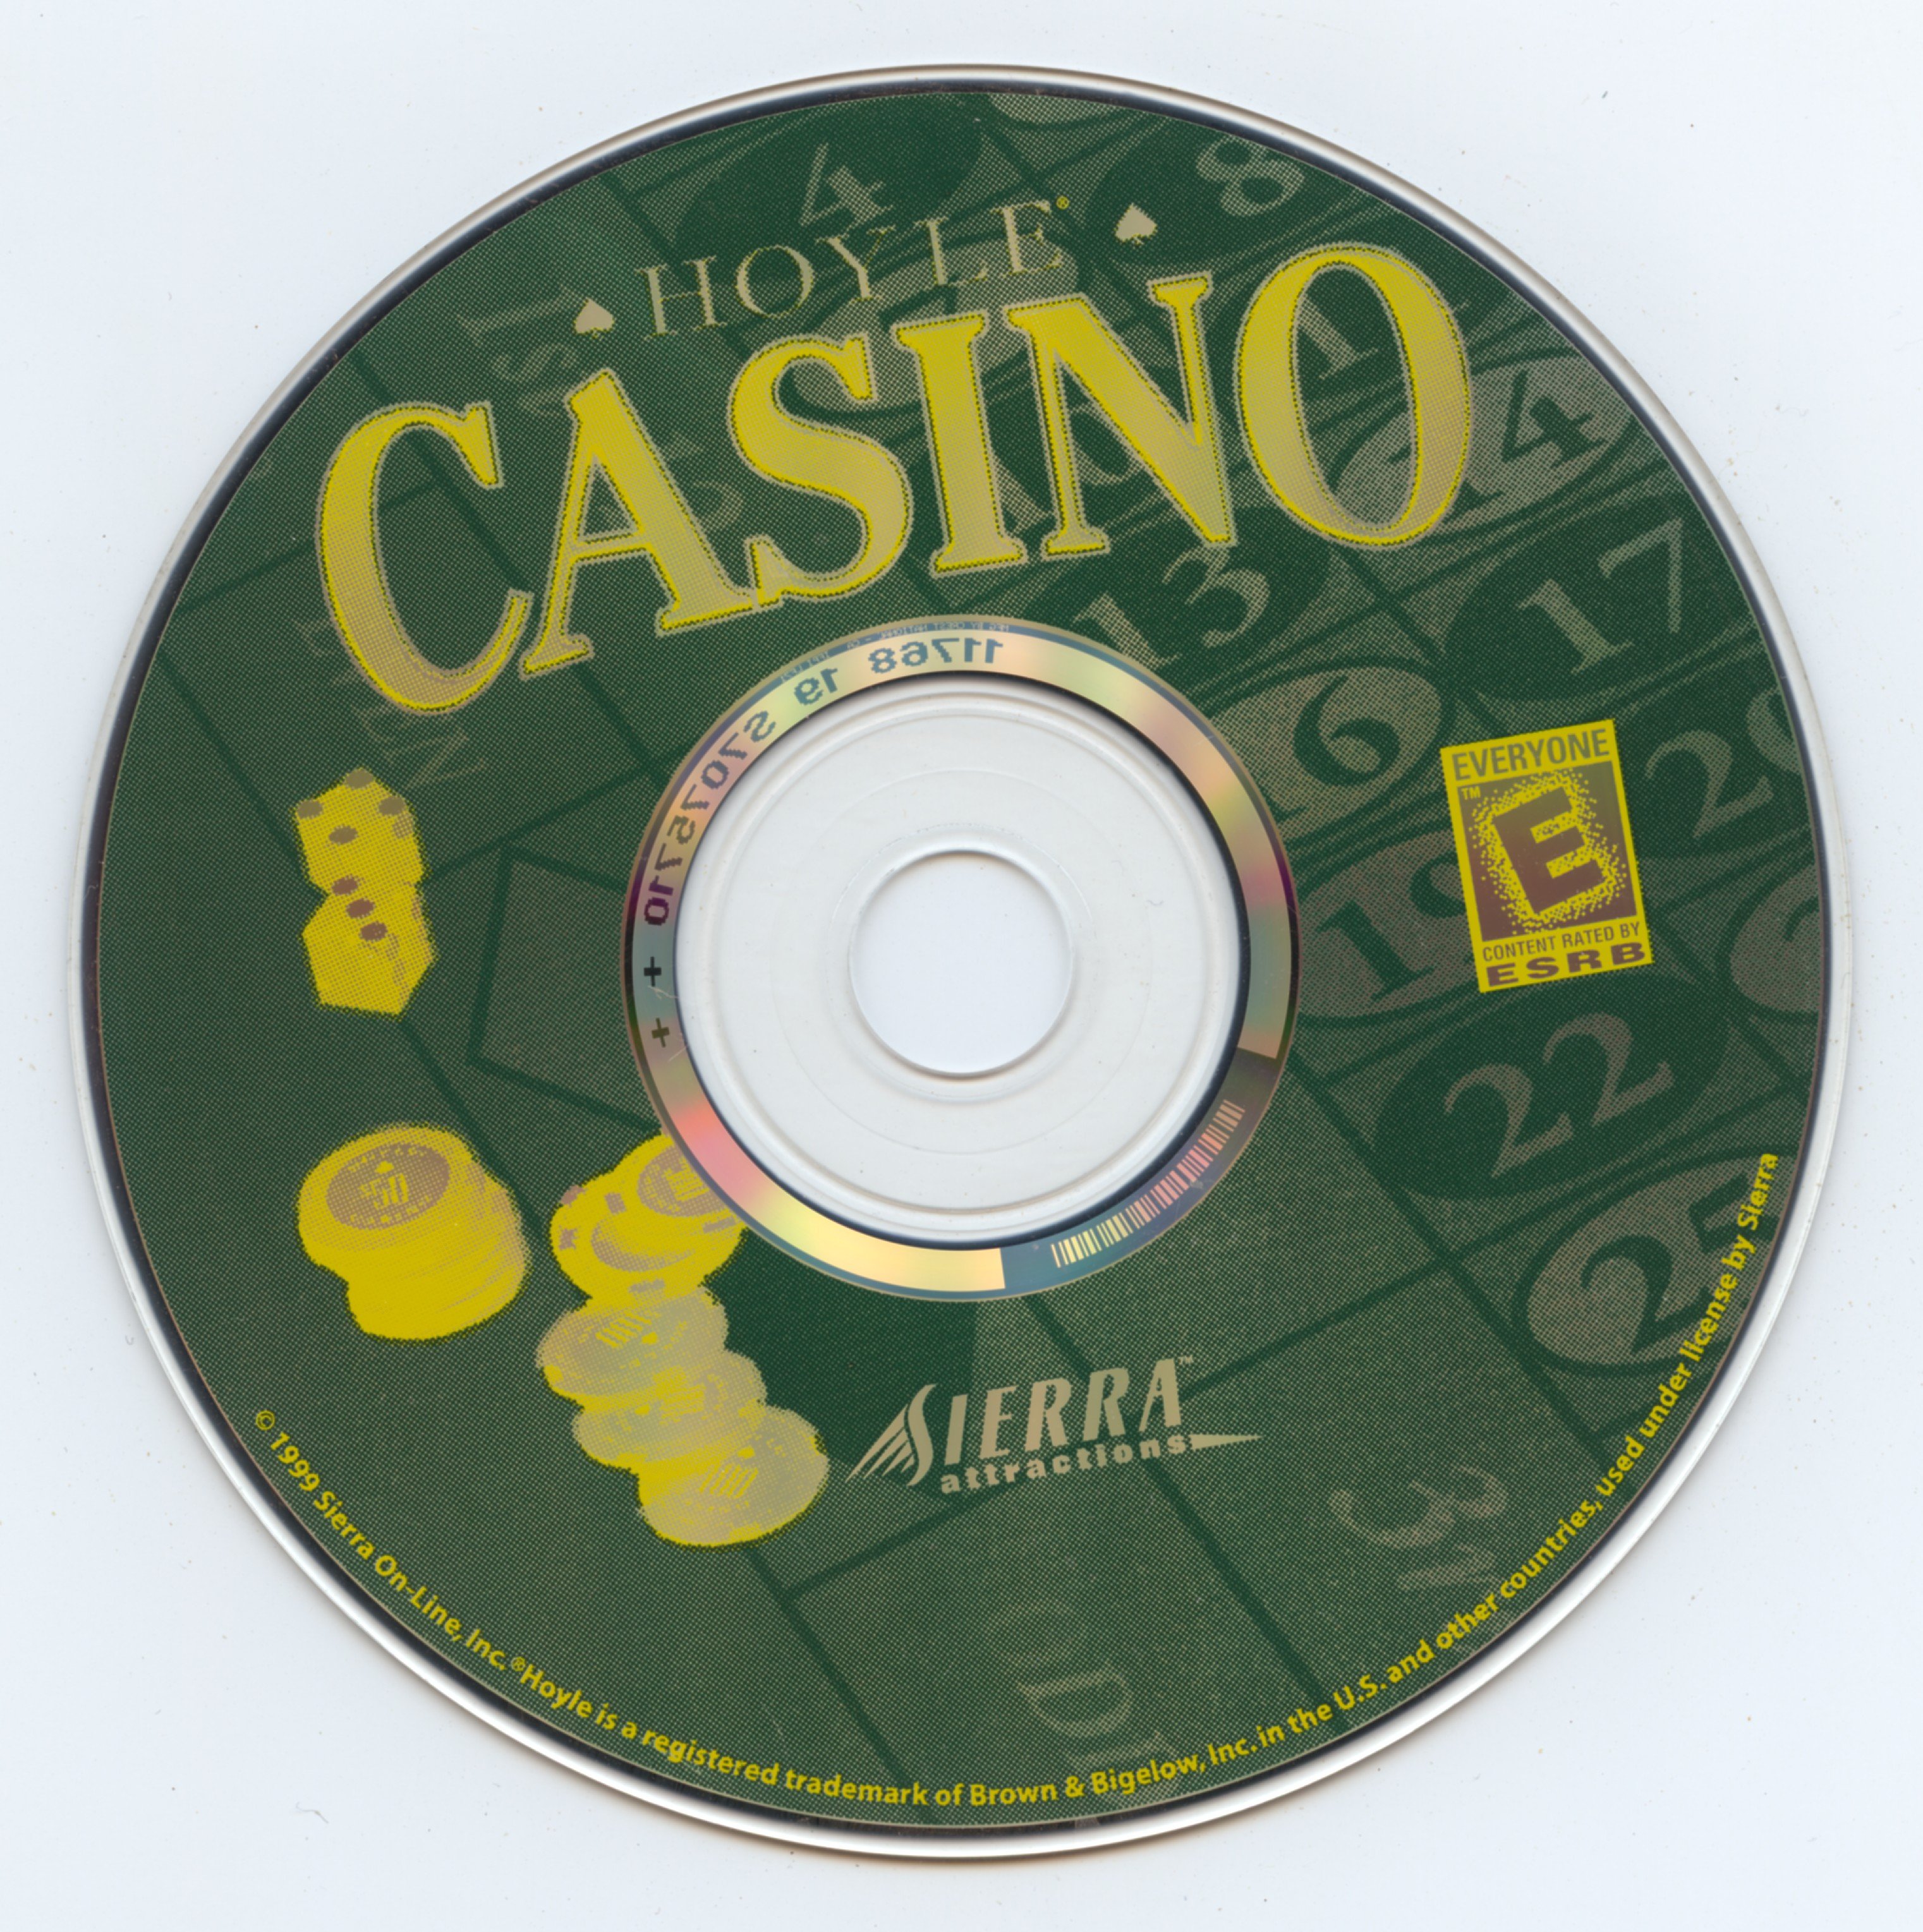 Hoyle casino torrent download mountaineer casino pa